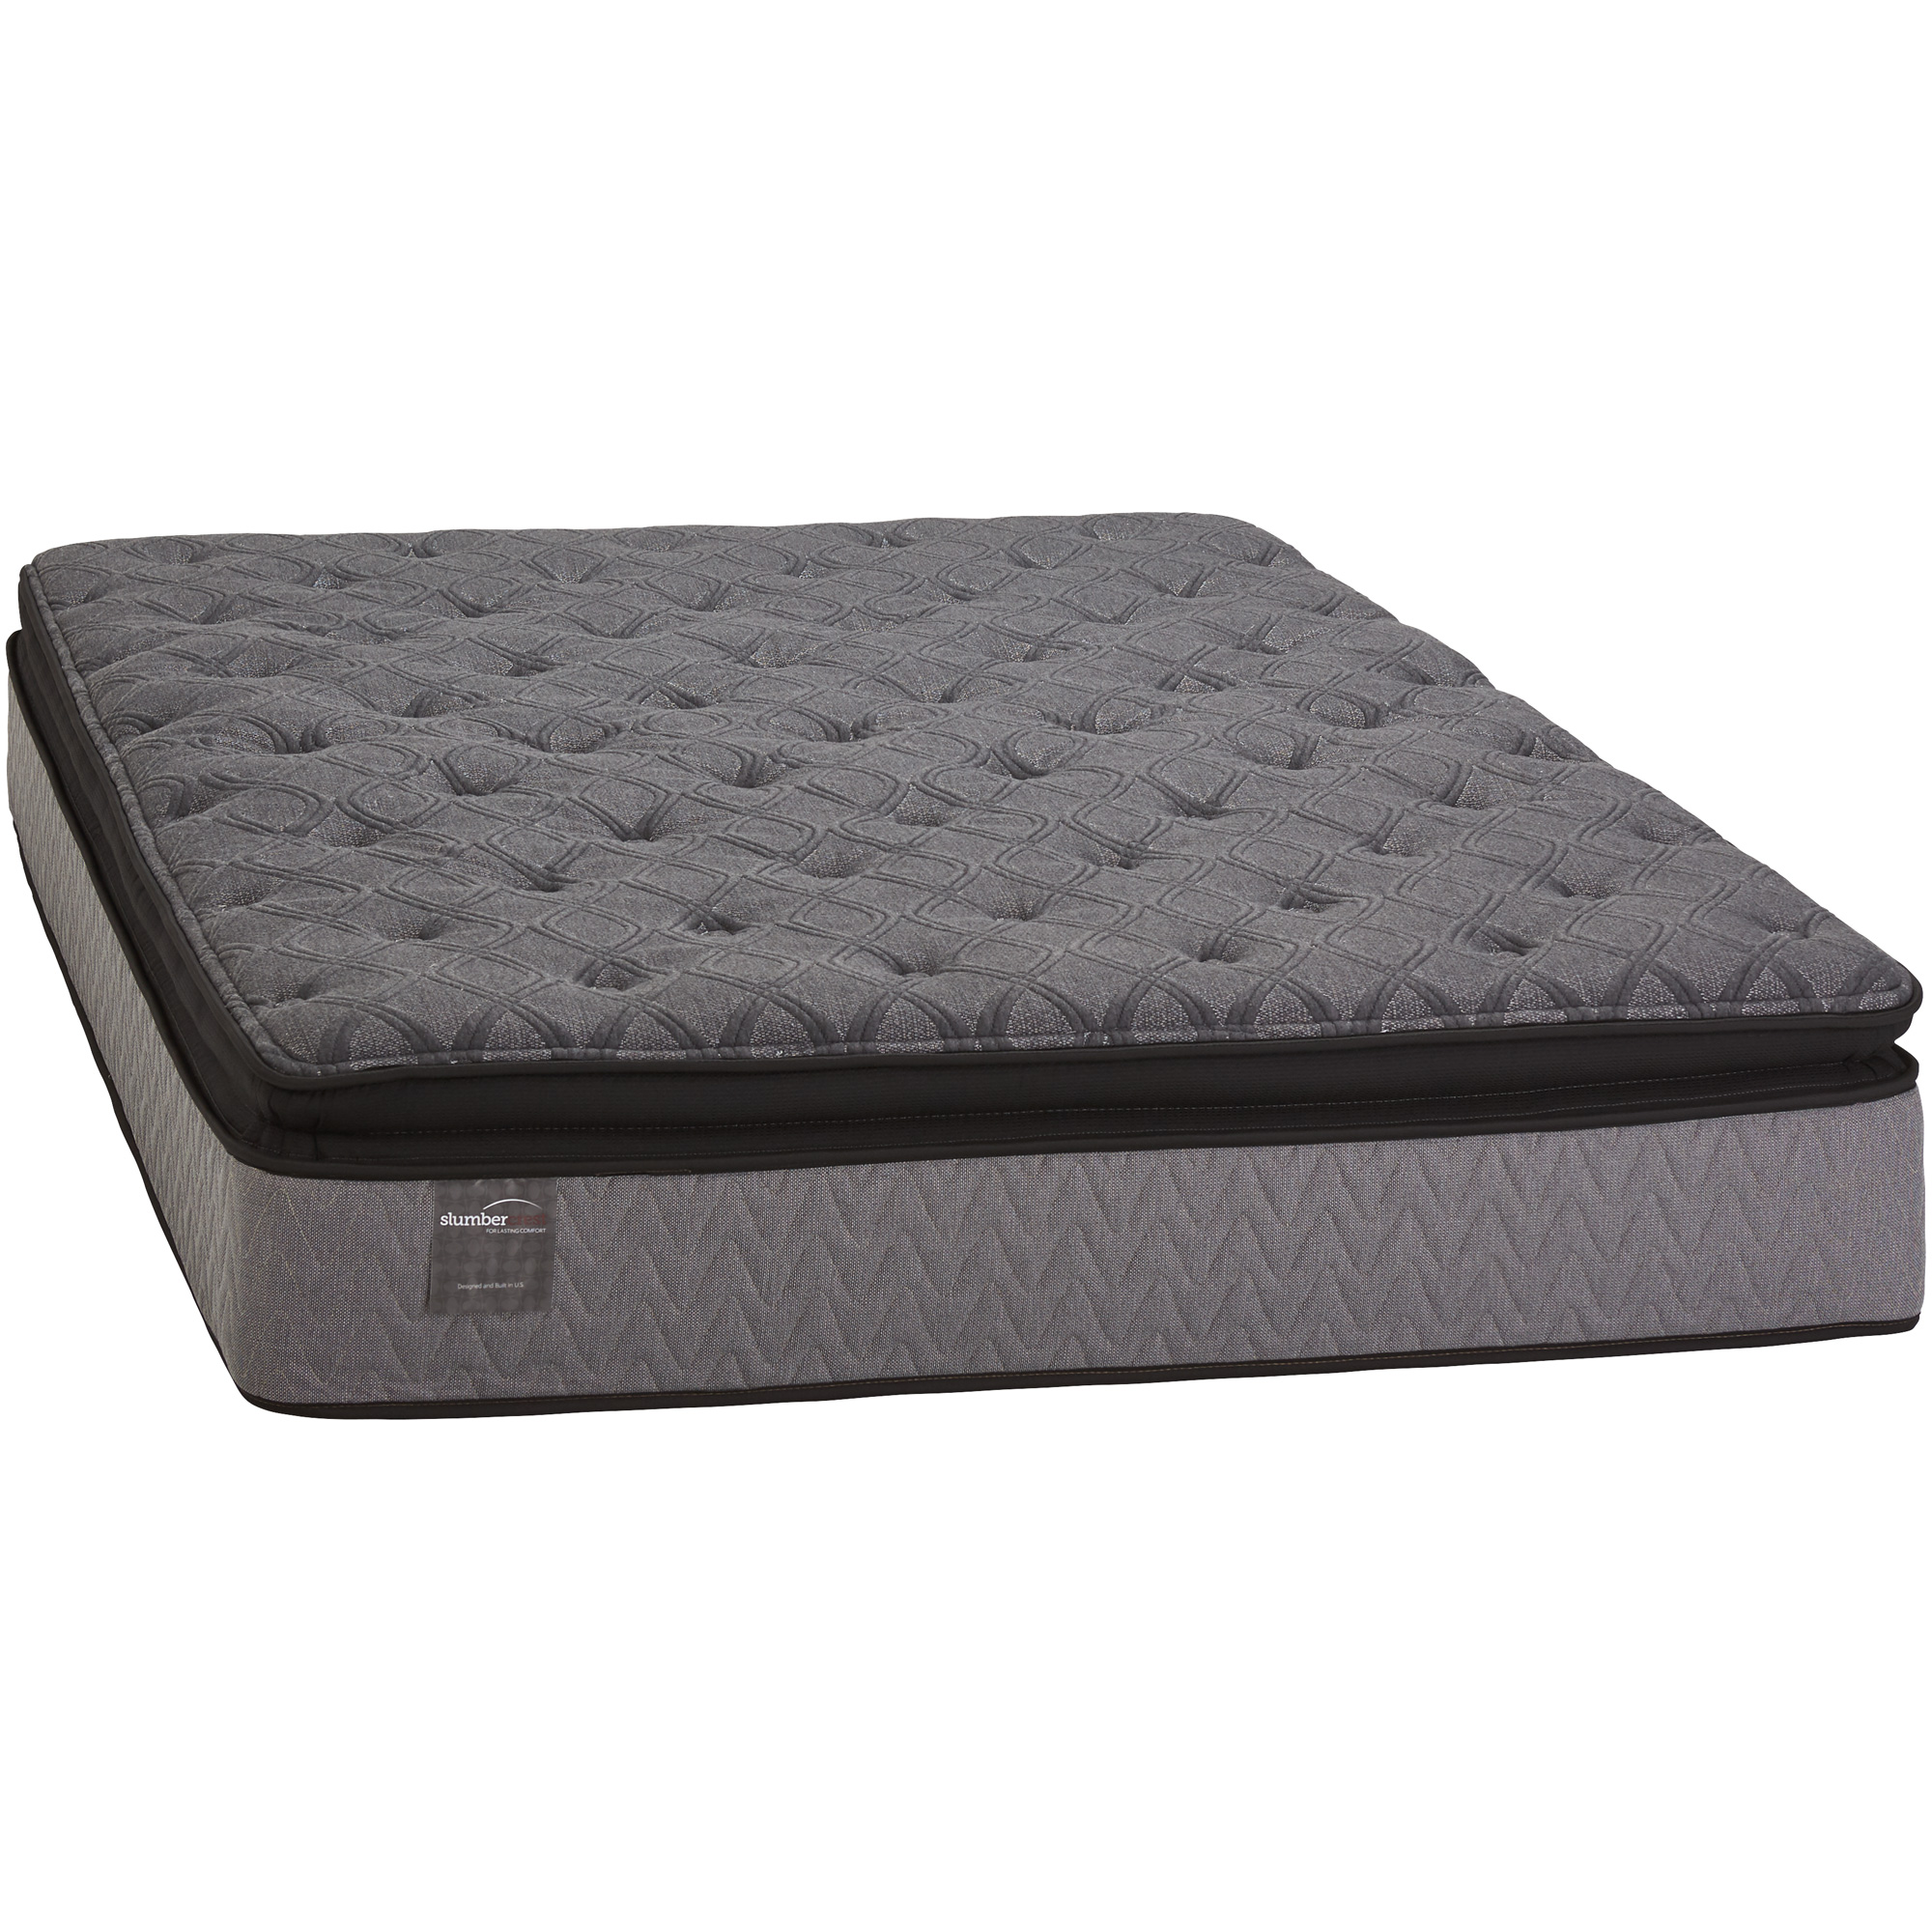 Slumbercrest Plush Pillowtop Full Mattress